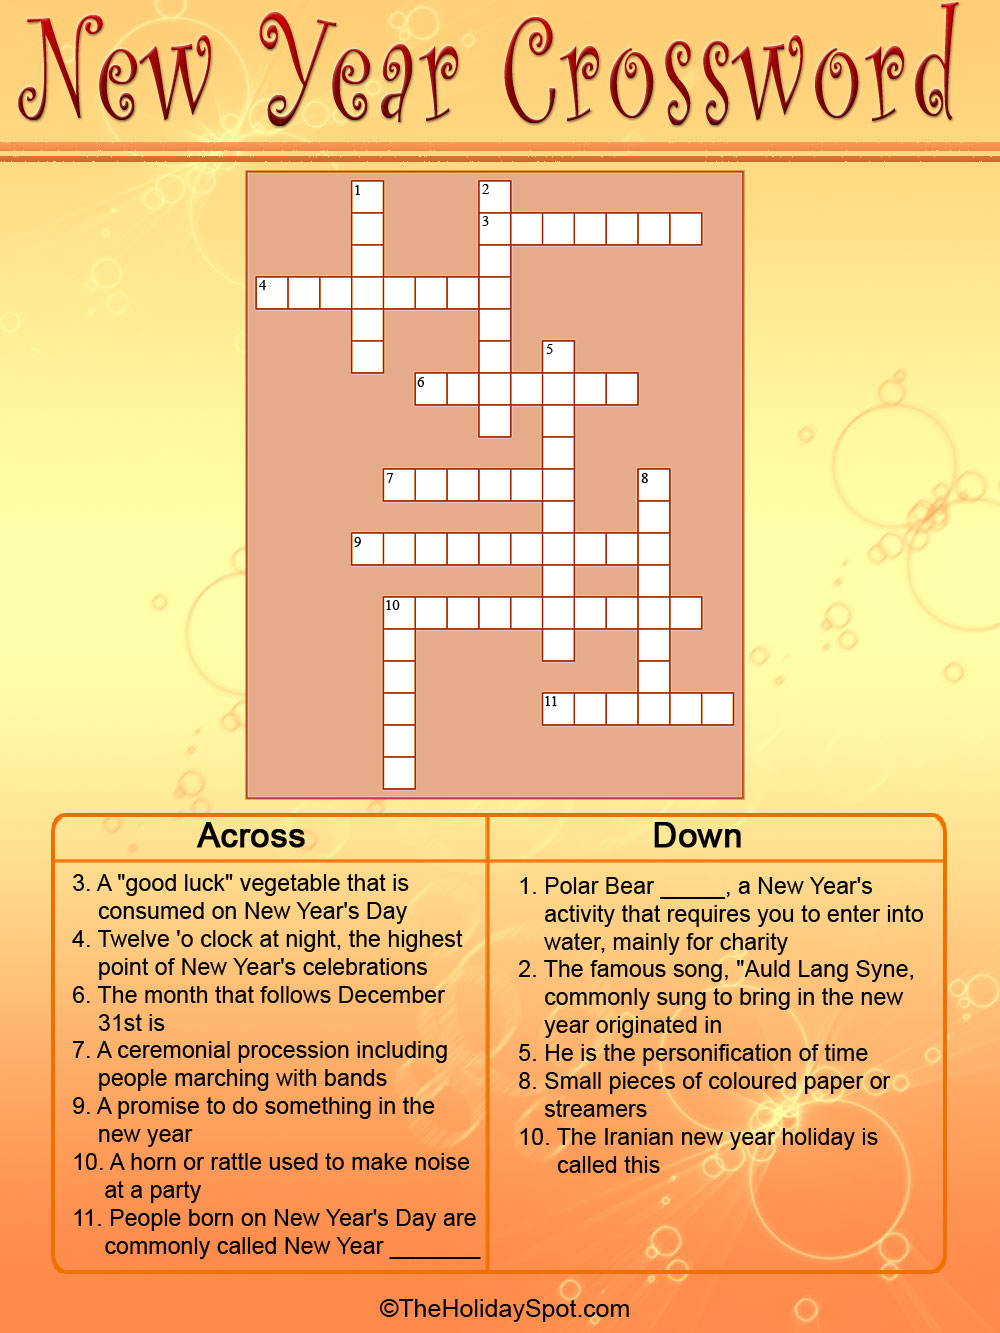 Online dating site crossword clue